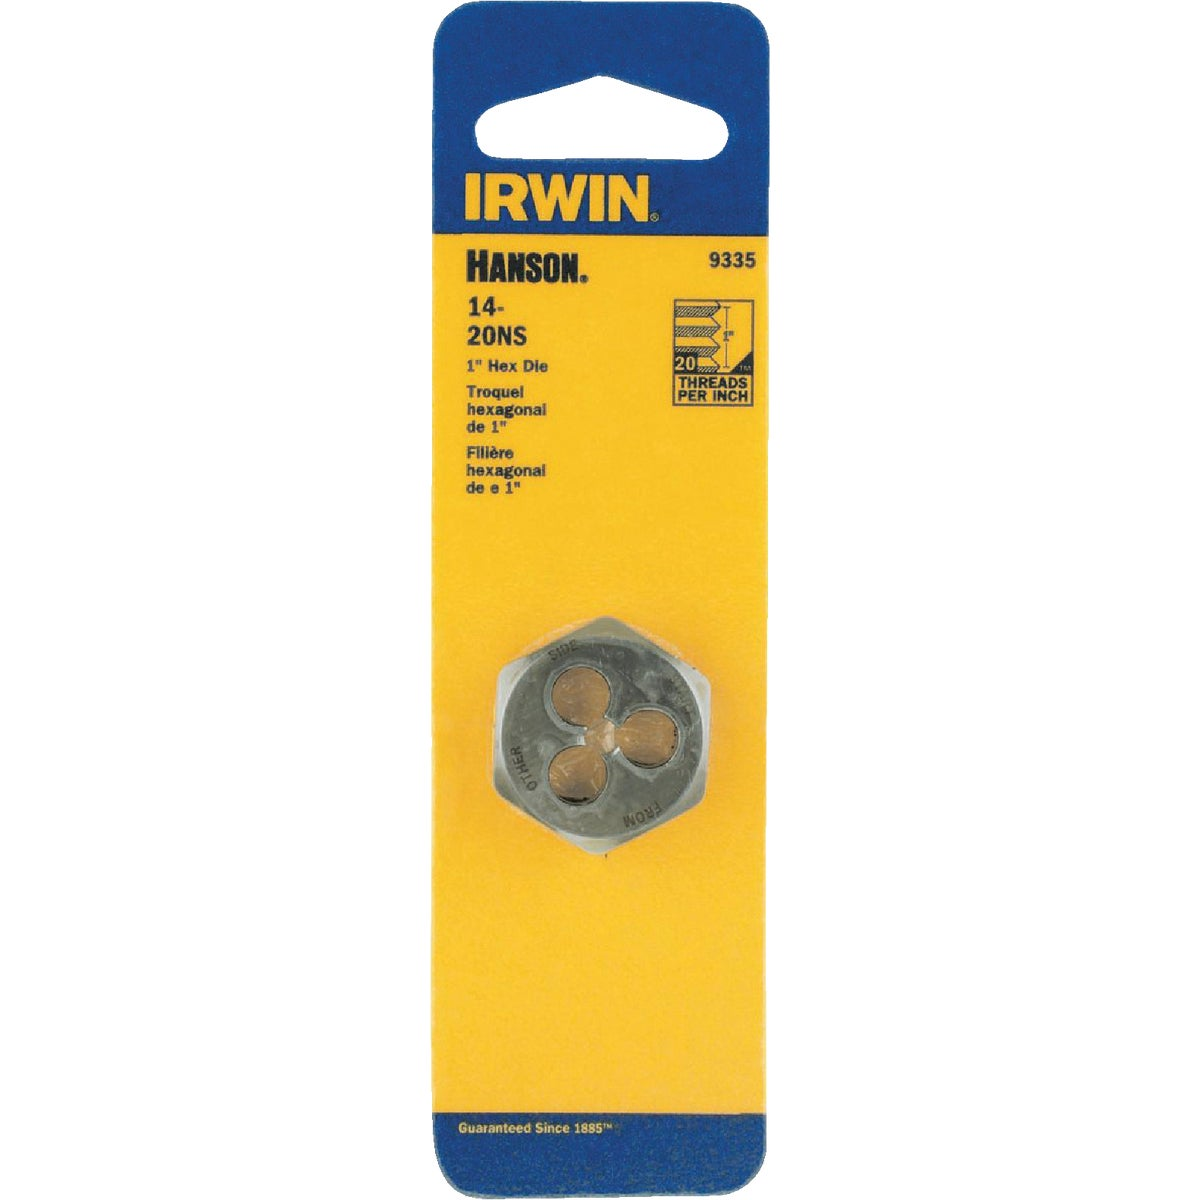 14X20 NS HEX DIE - 9335ZR by Irwin Industr Tool